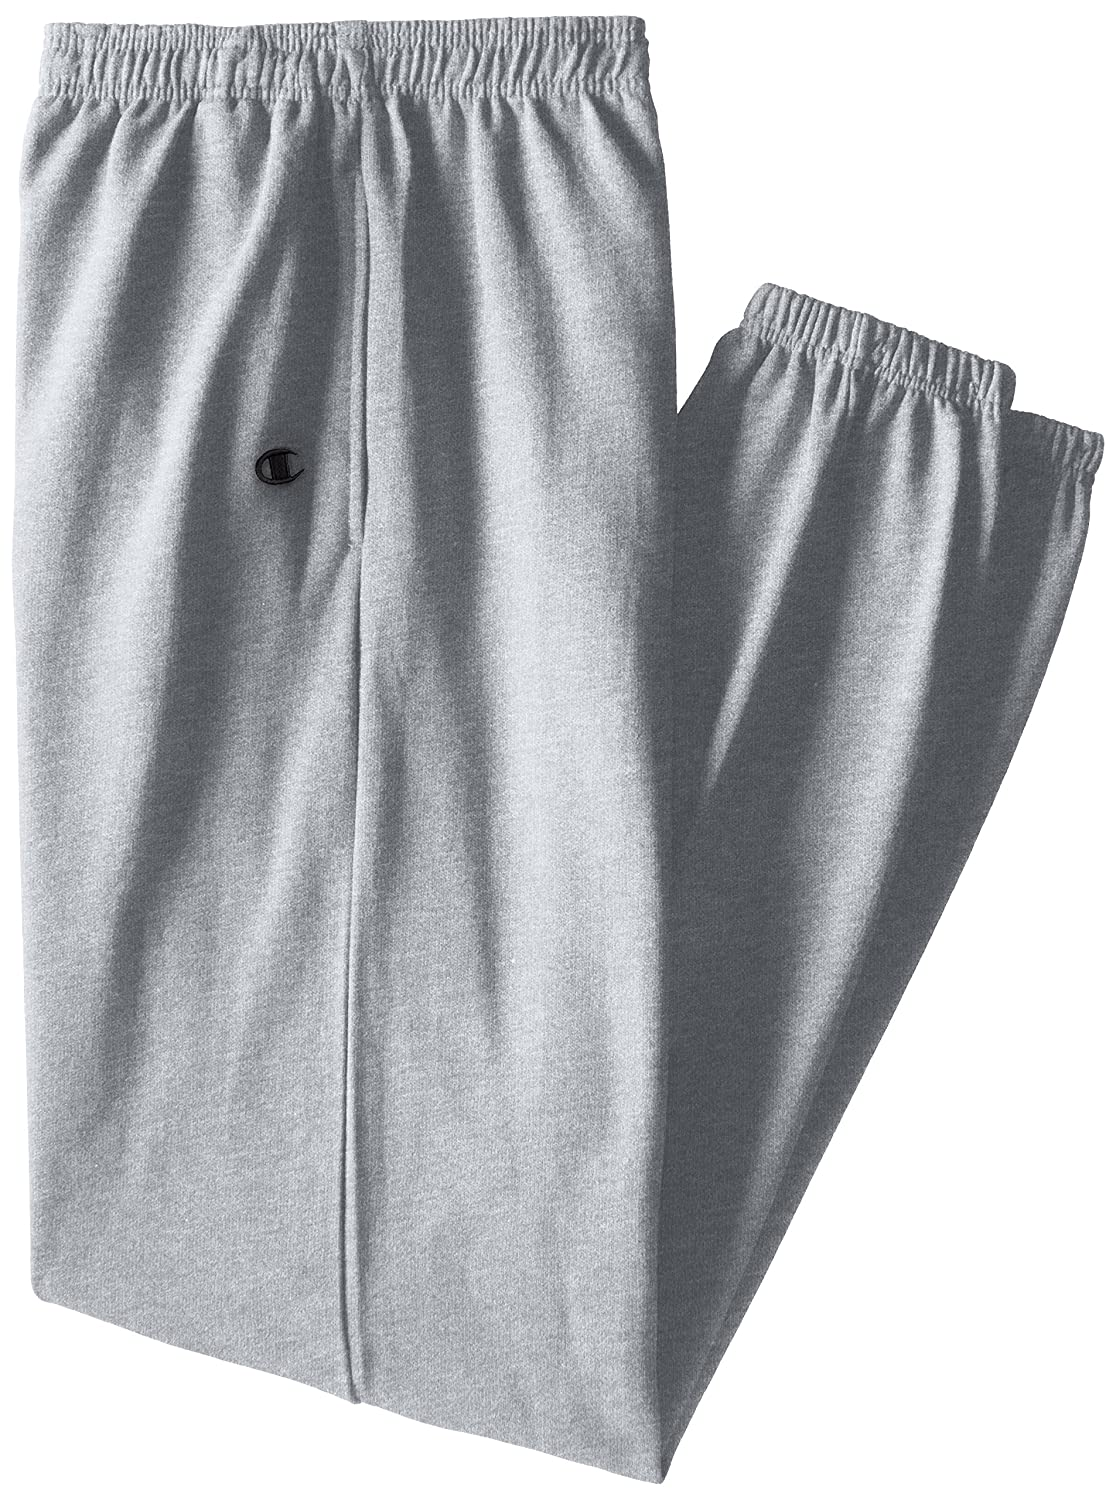 Champion Men's Big-Tall Fleece Pant газонокосилка бензиновая champion lm5127bs